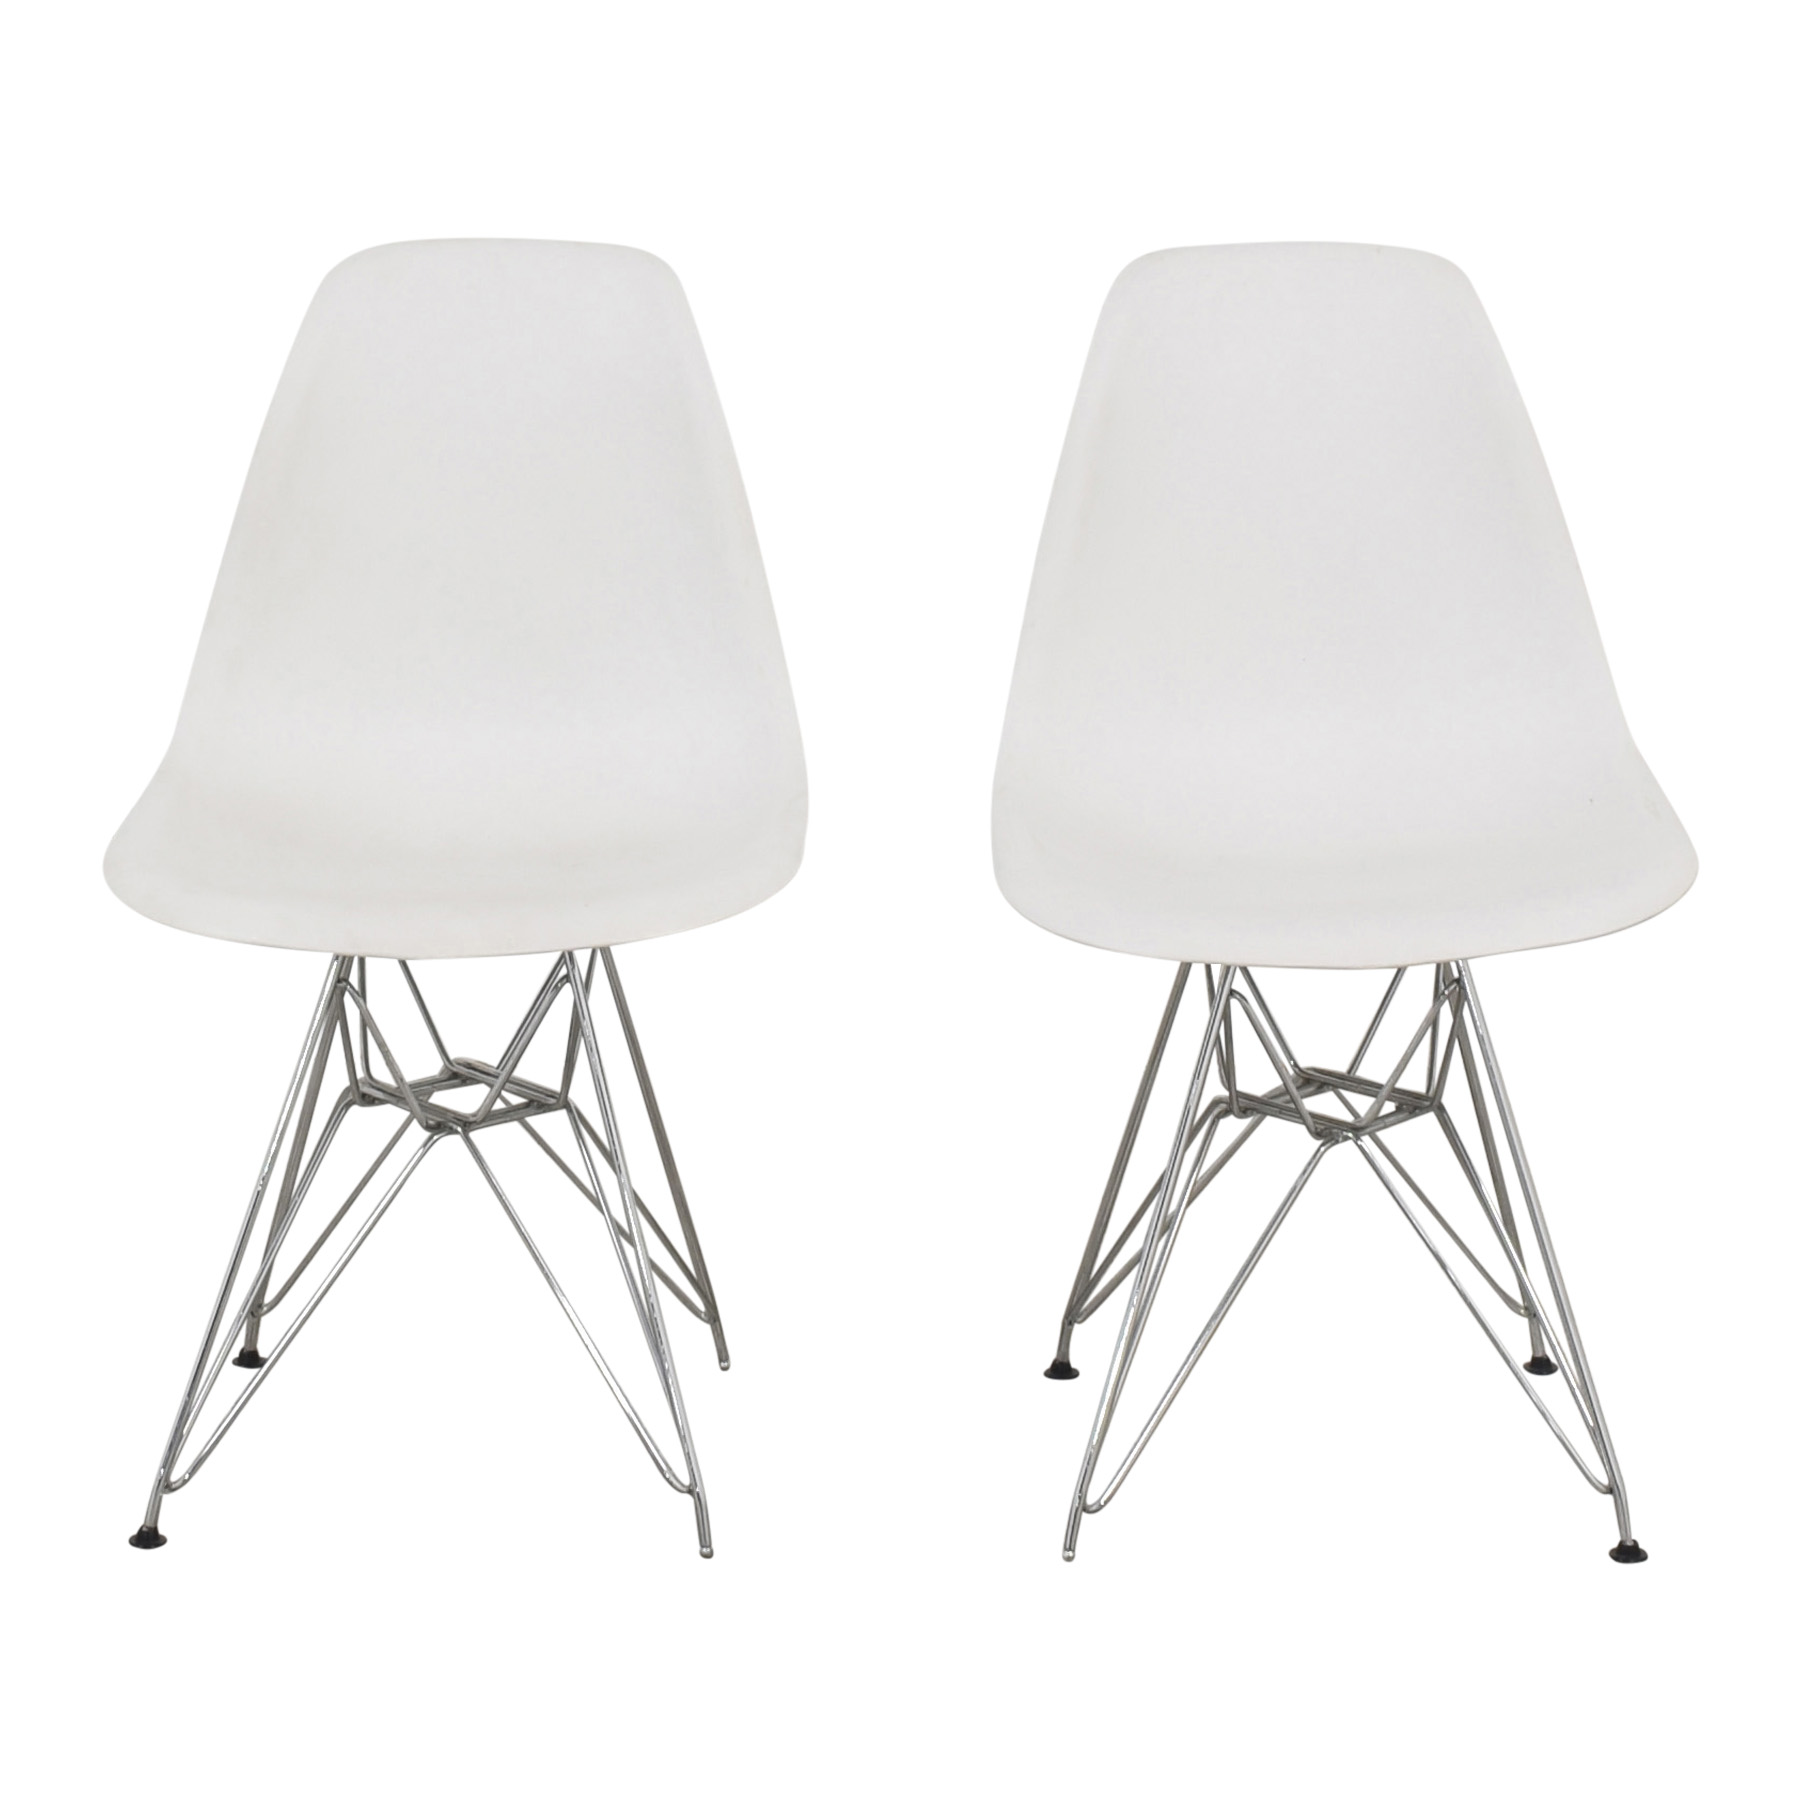 Eames-Style Molded Dining Chairs Chairs